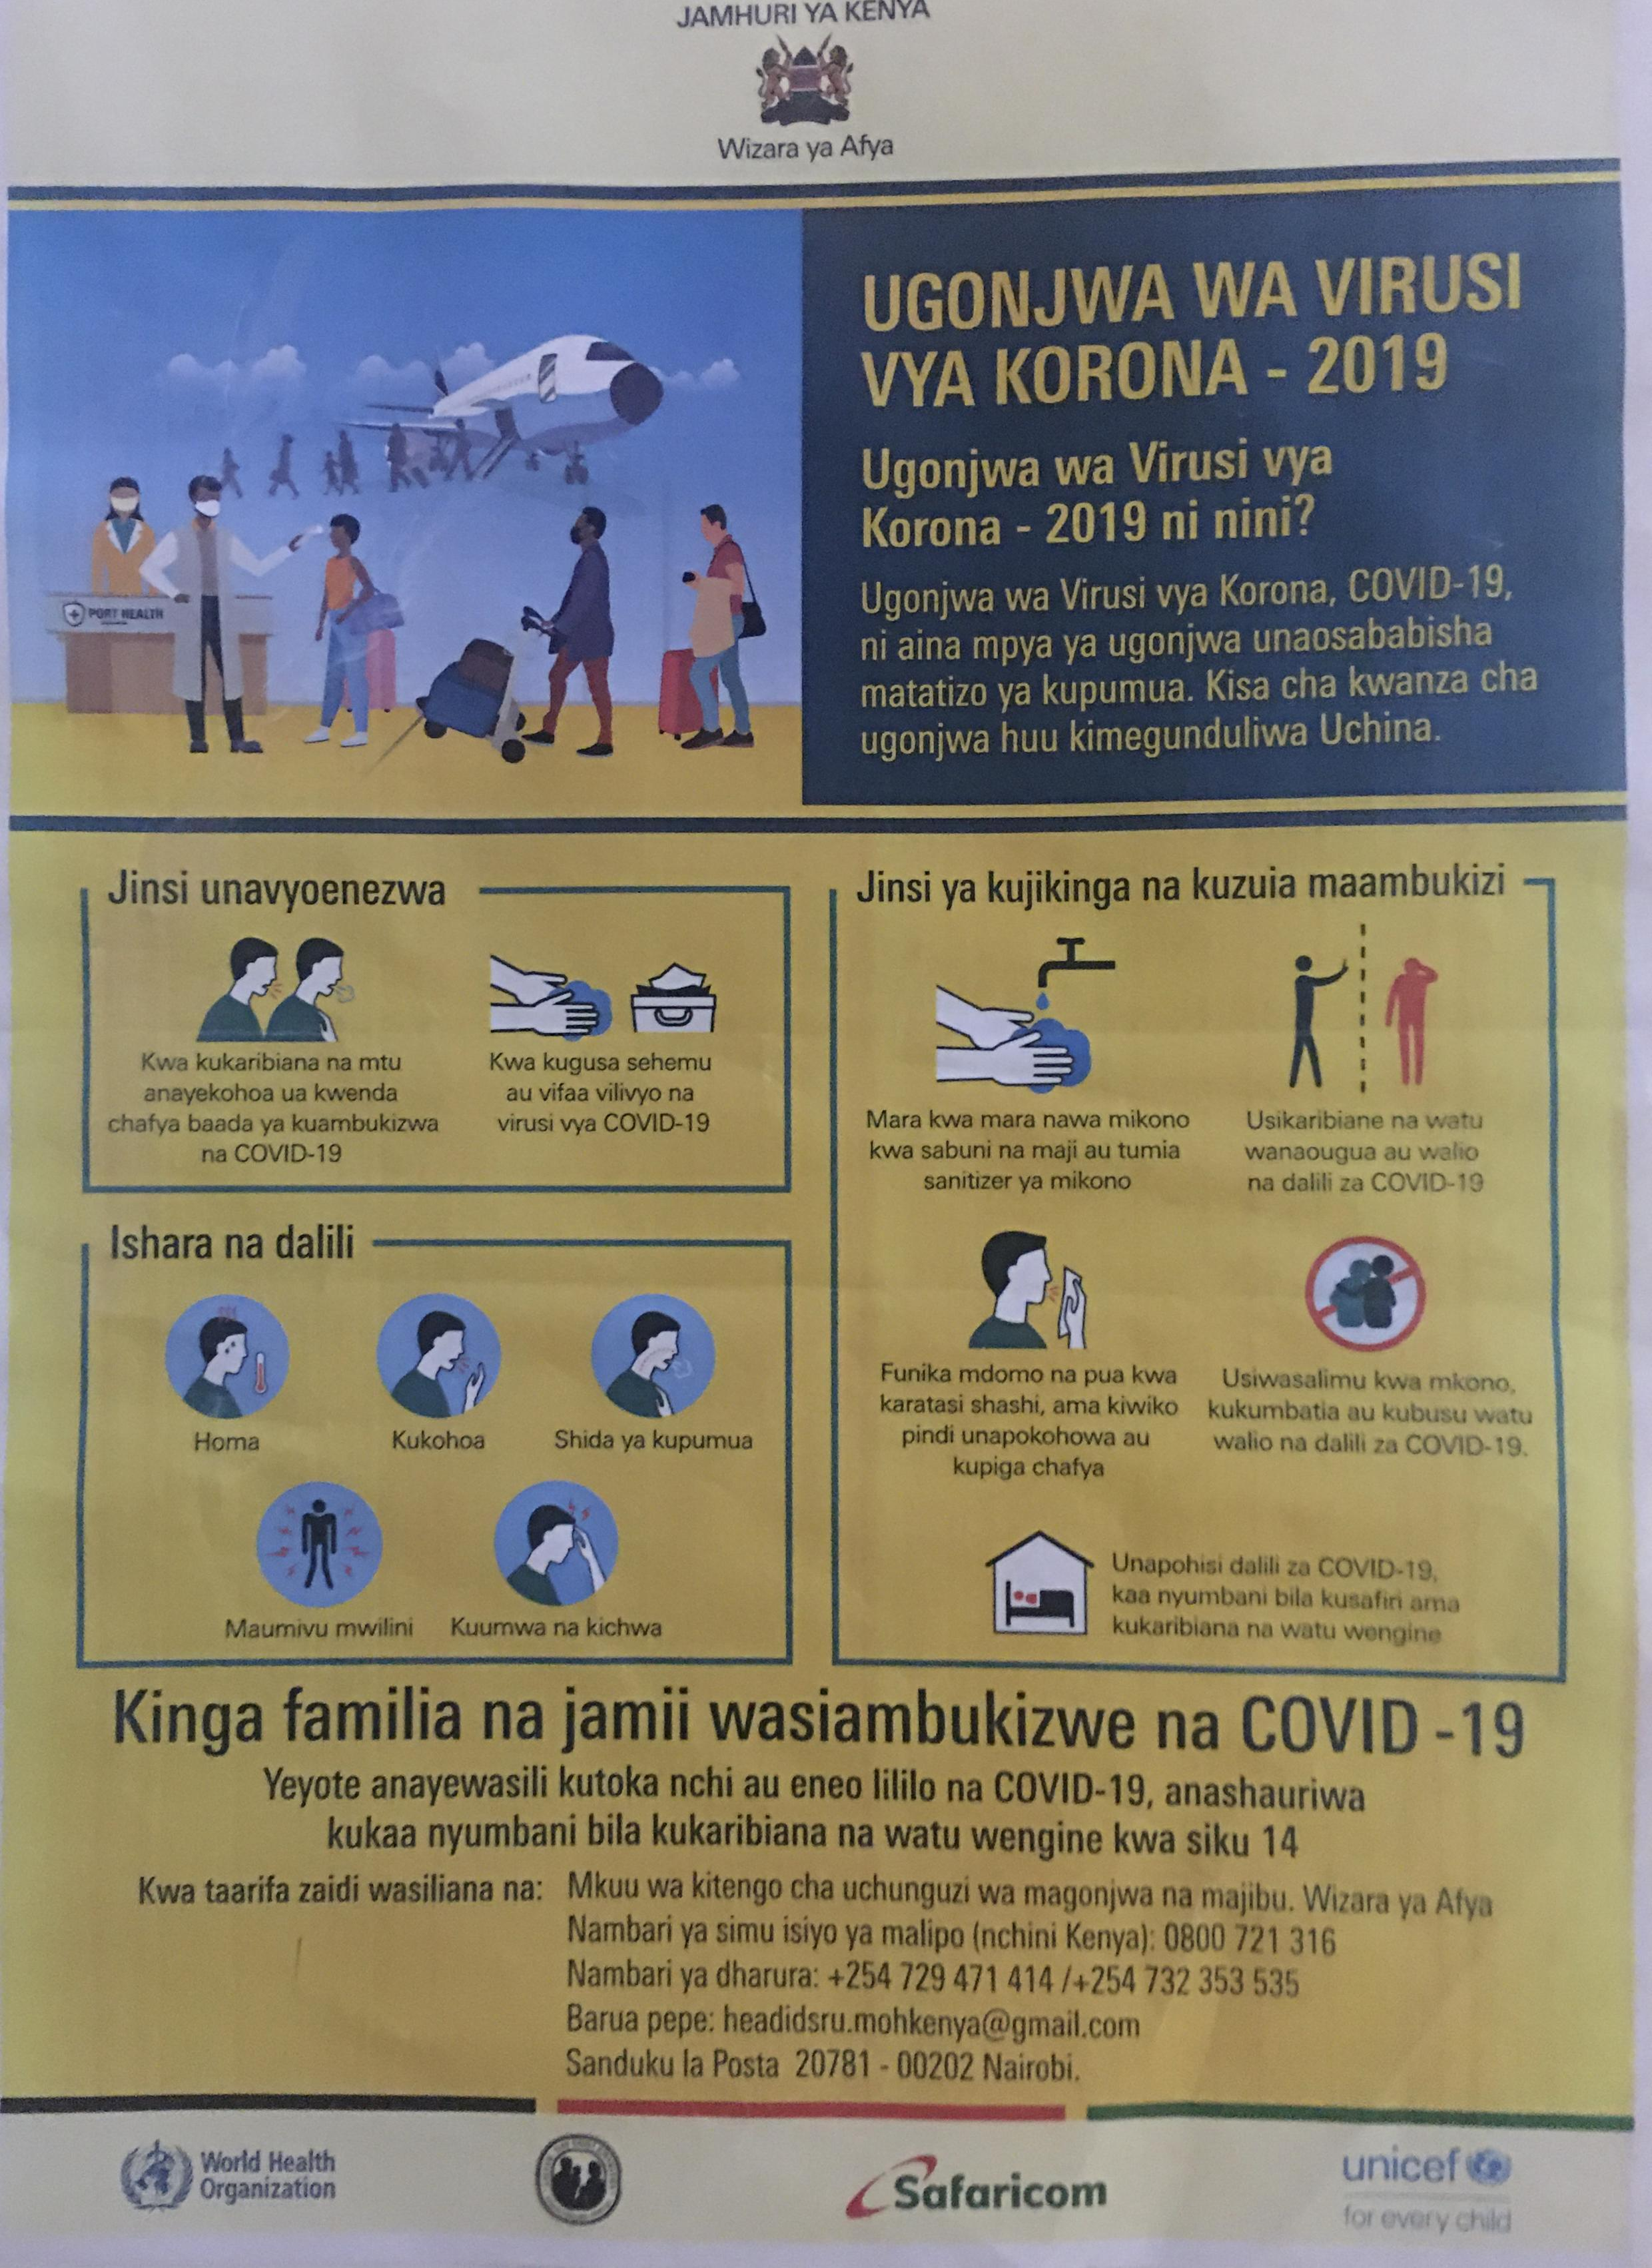 Kenyan government advisory on combatting the spread of CoVid-19